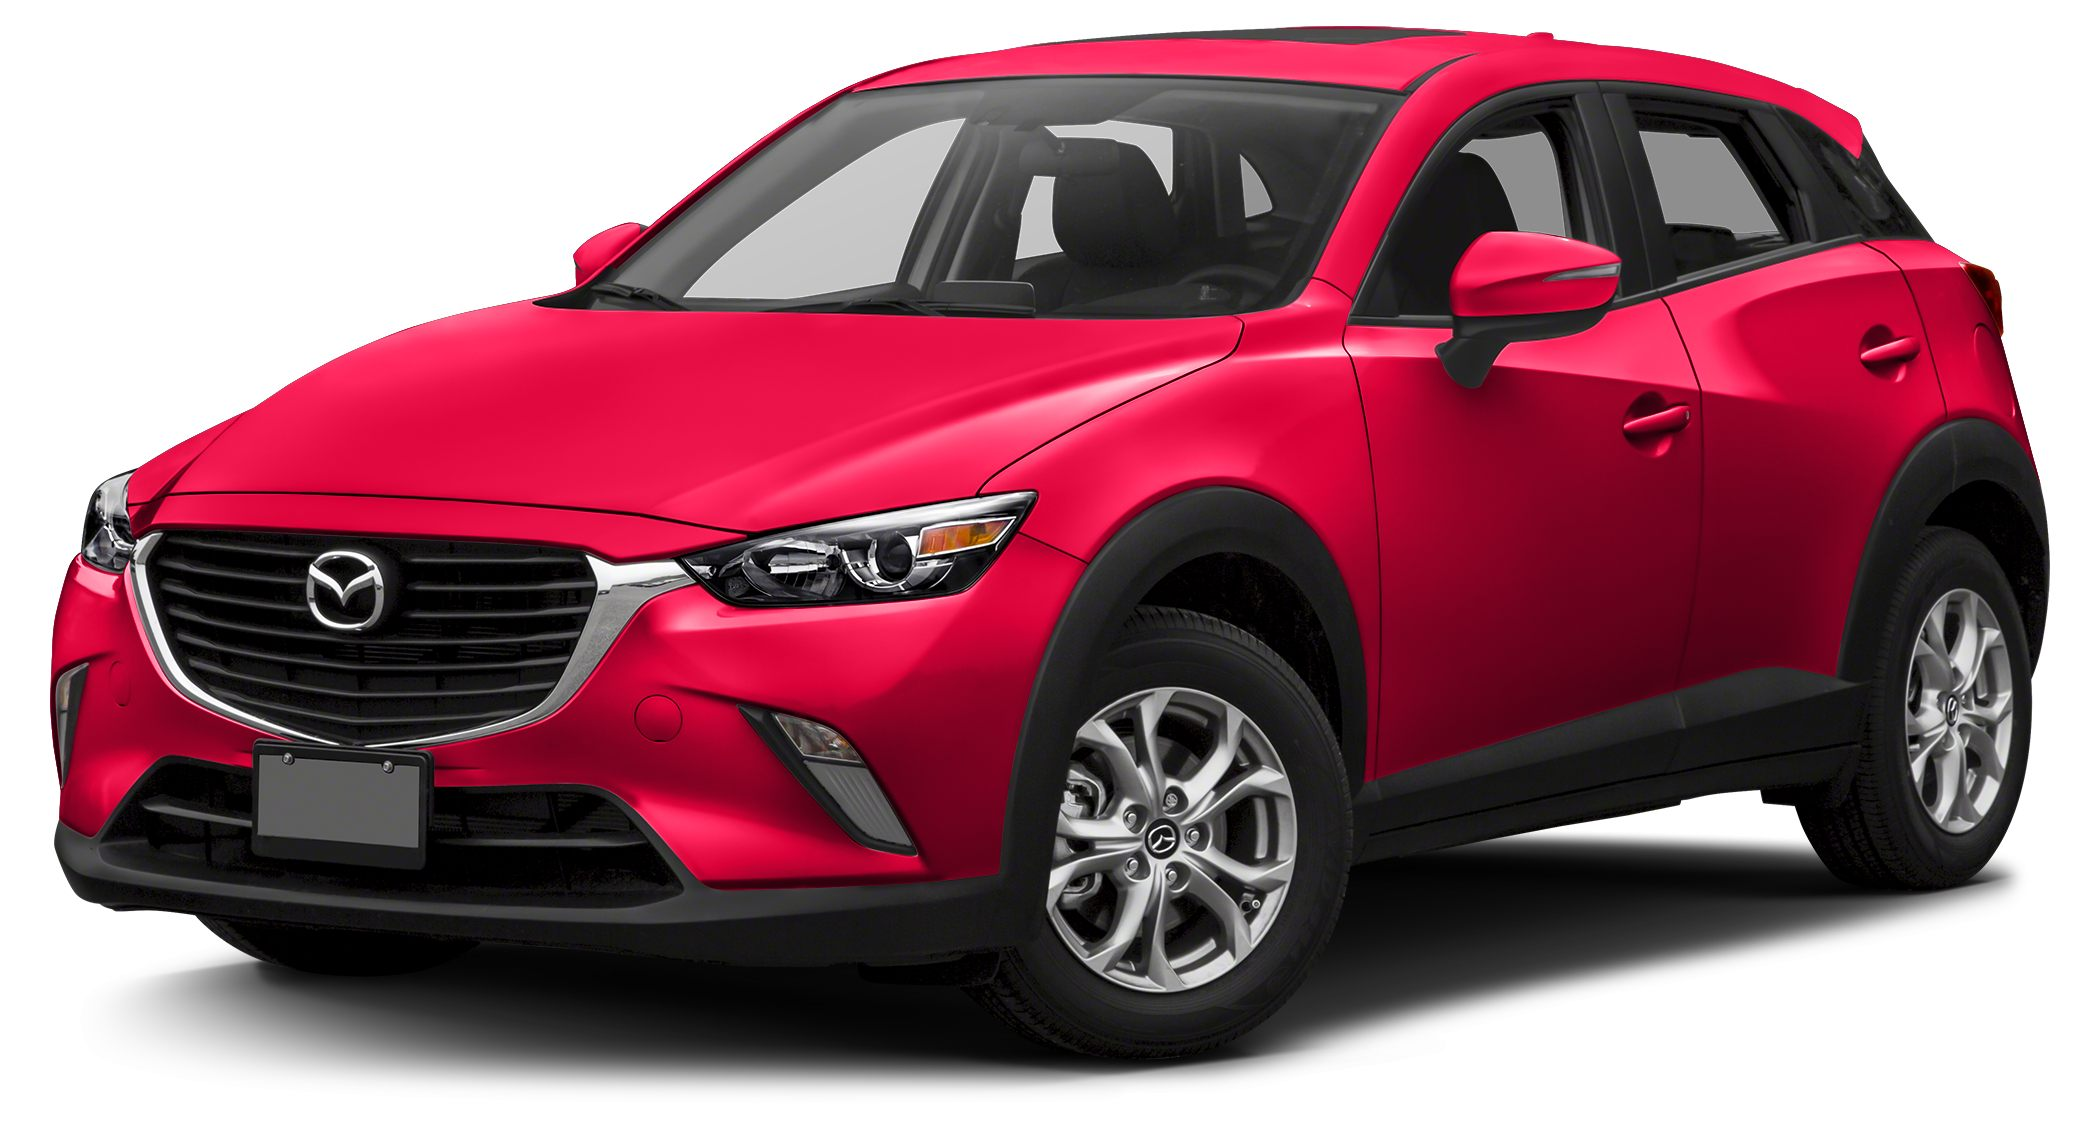 2016 Mazda CX-3 Grand Touring Miles 0Color Soul Red Metallic Stock G0115611 VIN JM1DKBD79G01